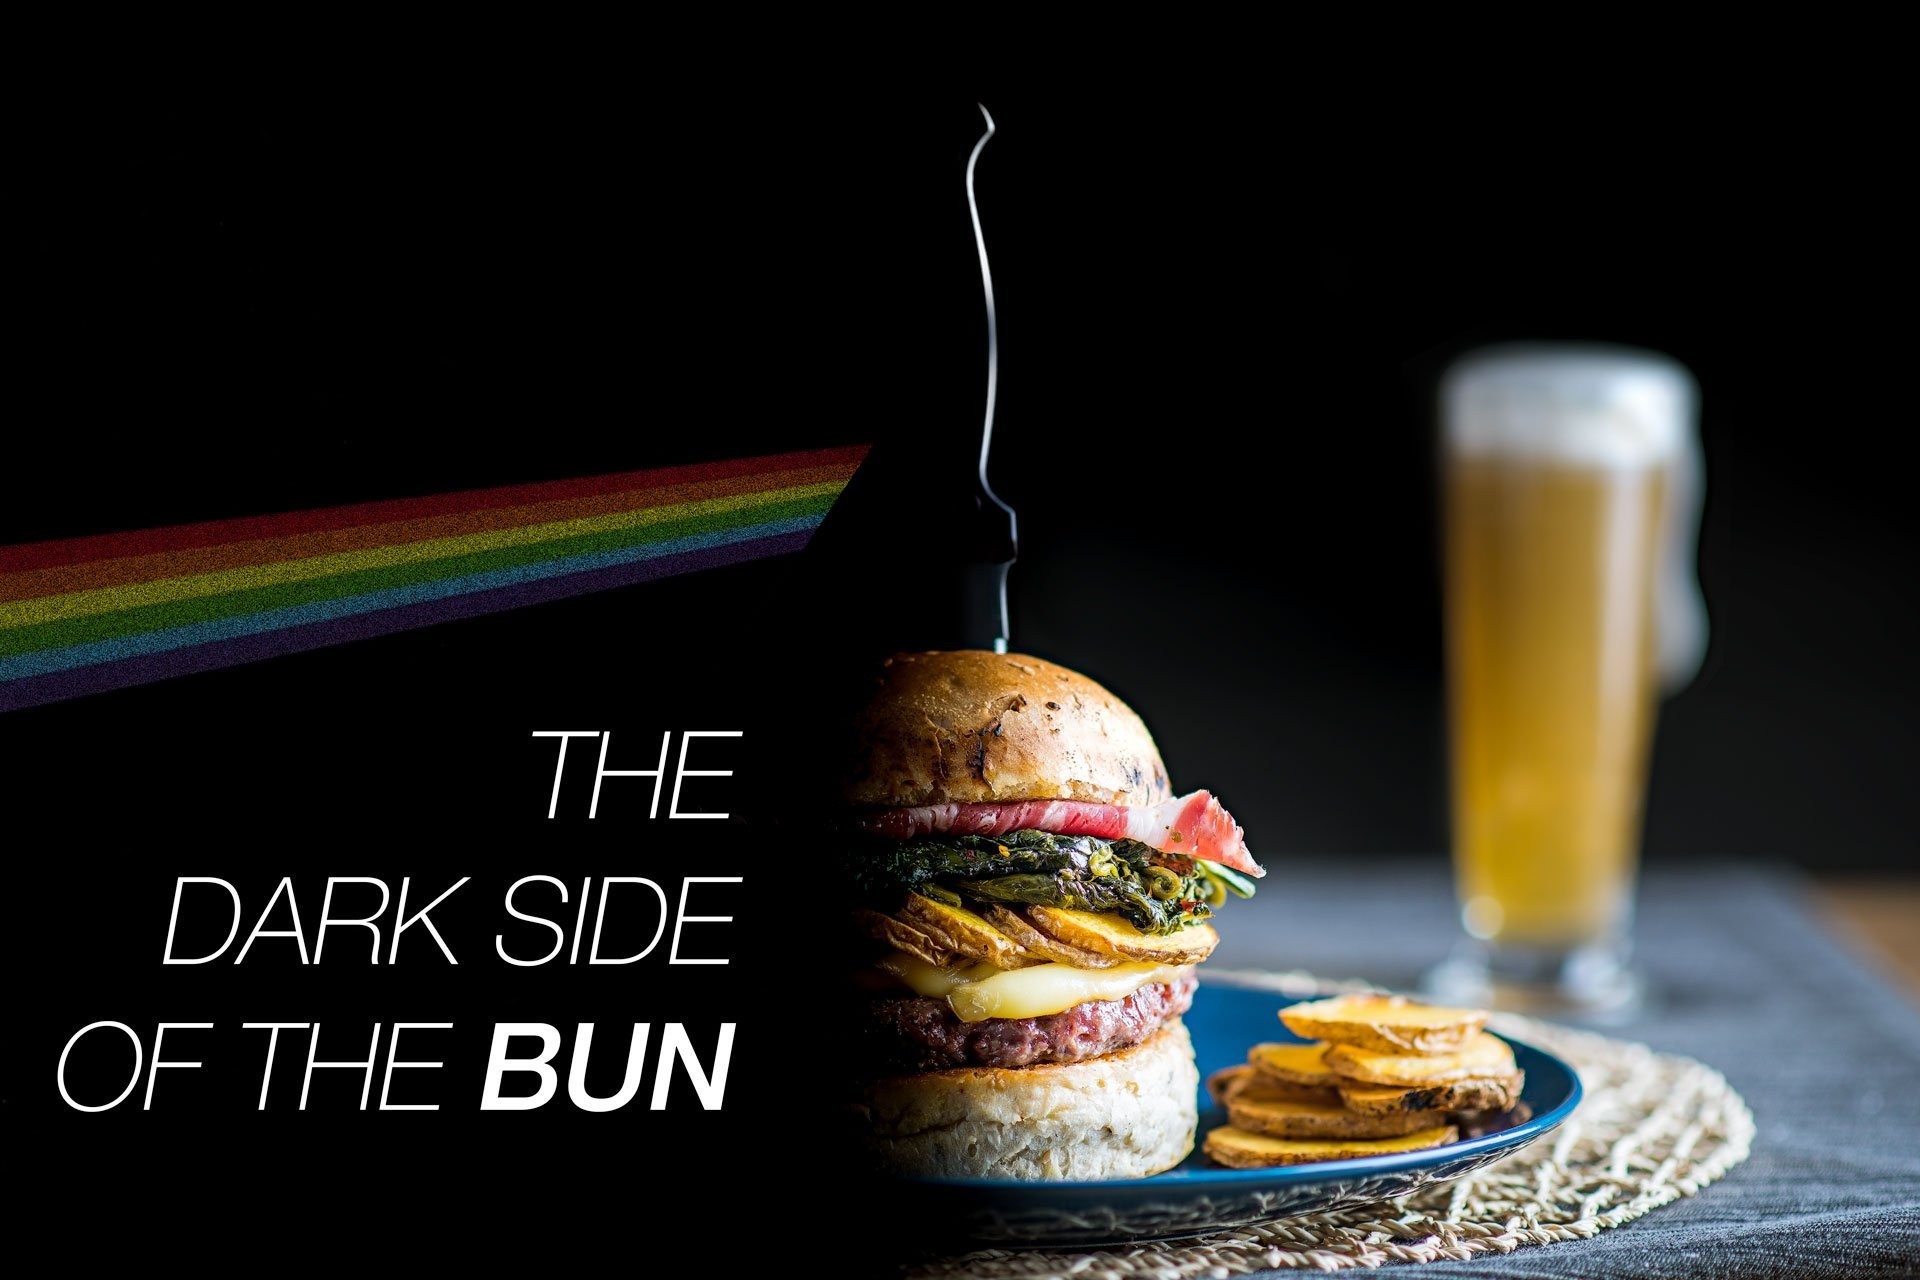 the dark side of the bun